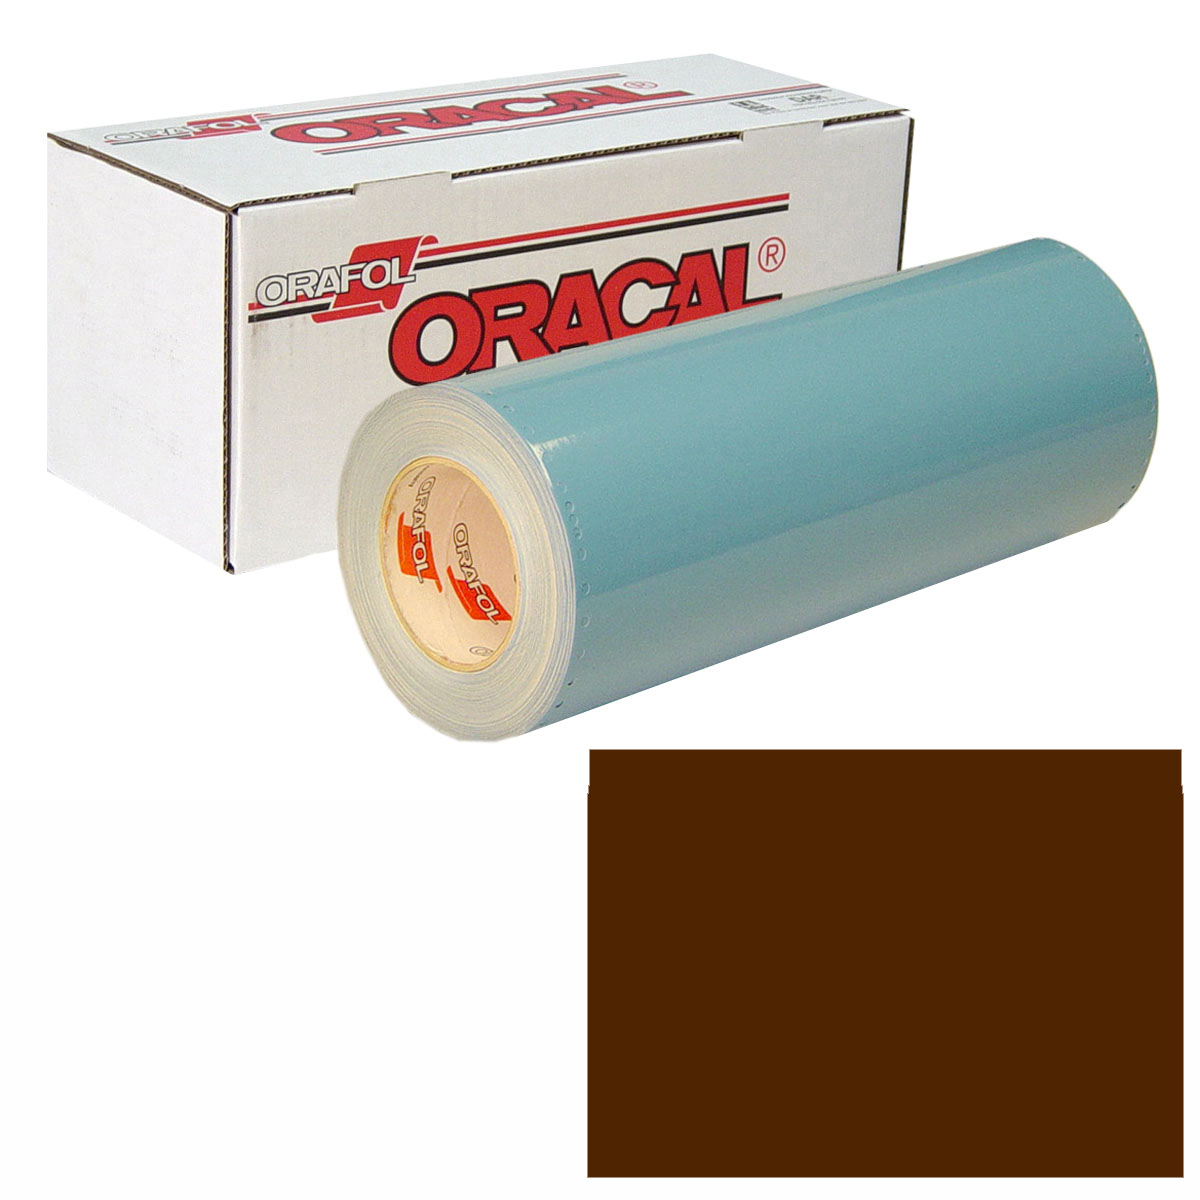 ORACAL 751 Unp 48in X 50yd 080 Brown